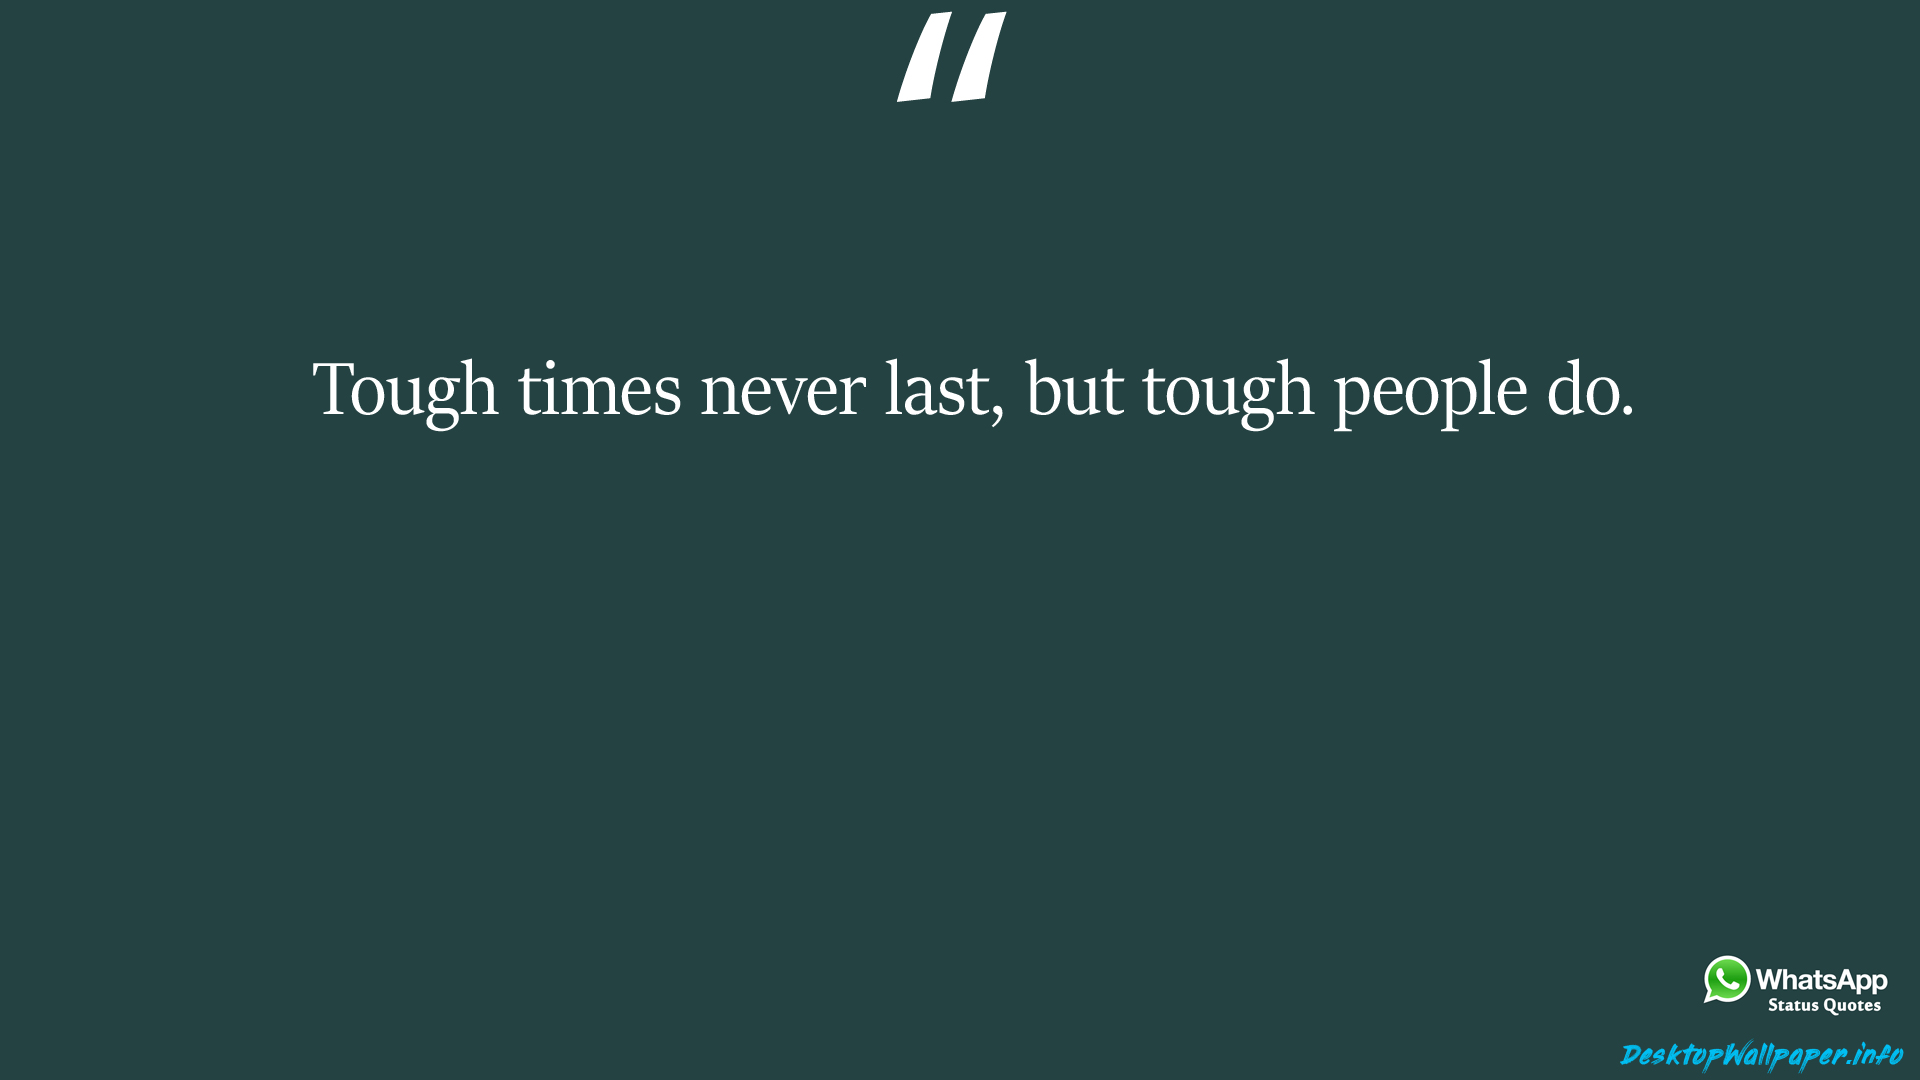 Tough times never last but tough people do